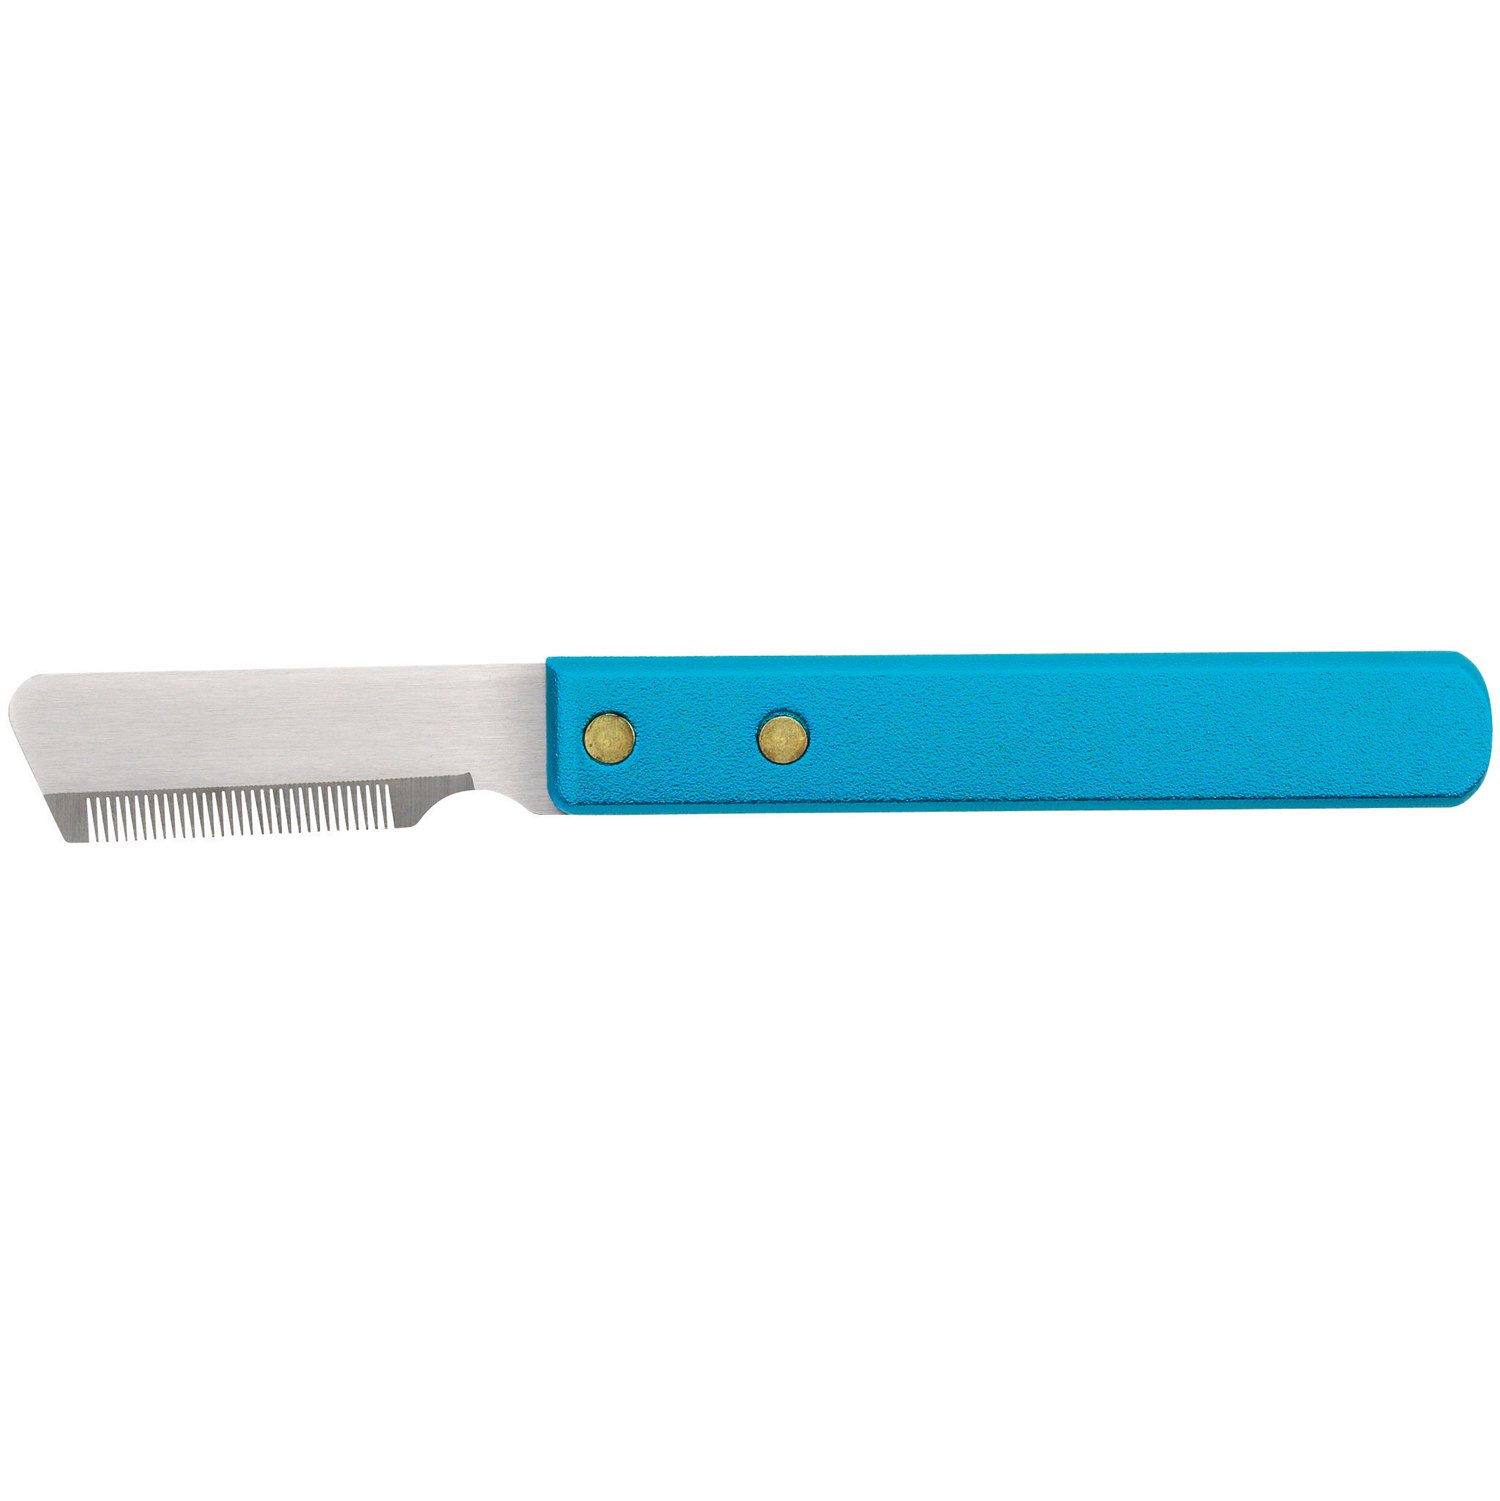 Master Grooming Tools Stripping Knives - Non-Slip